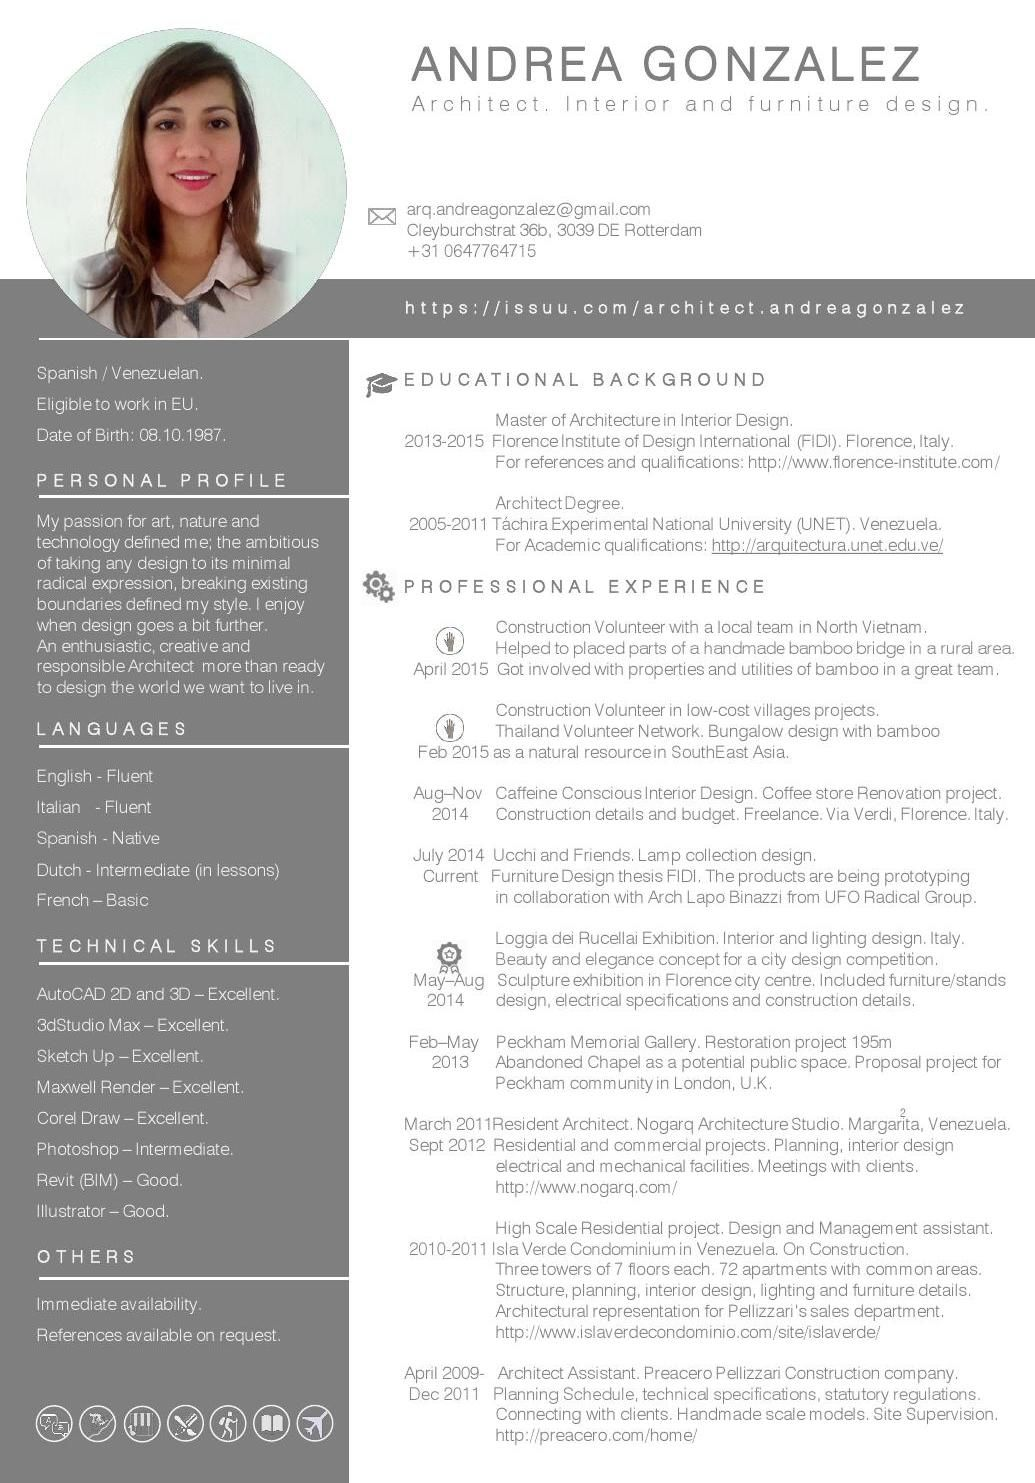 Cute 1 Round Label Template Thin 1 Week Schedule Template Solid 1 Year Experience Resume Format For Dot Net 100th Day Hat Template Young 1099 Misc Form Template Green13th Birthday Invitation Templates Alejandro Martín Barreiro | Ars And Architects